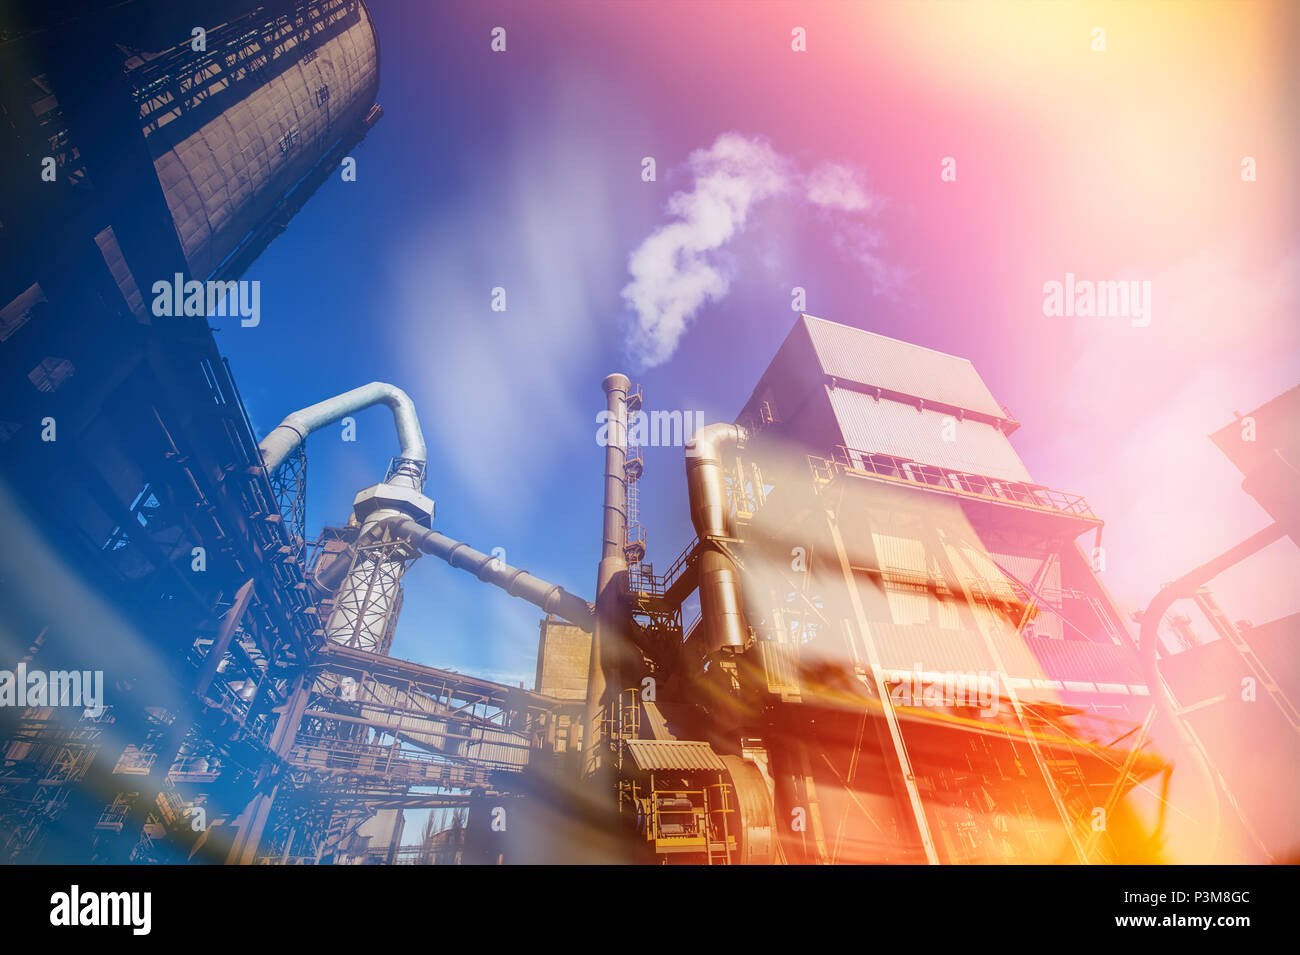 industrial plant for the production of cement. Buildings of a production complex of cement technology. Stock Photo